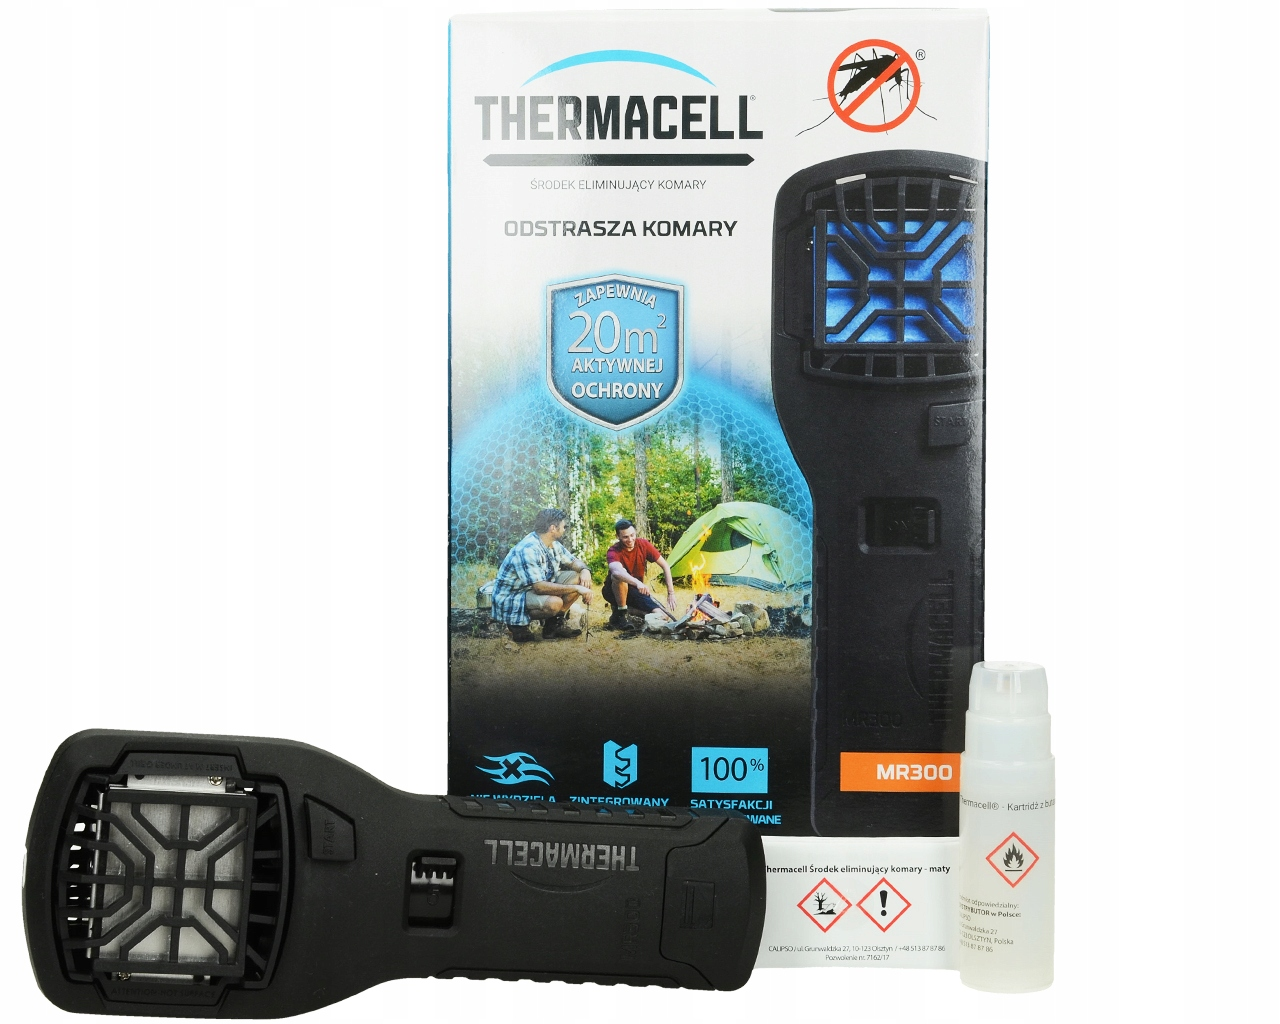 MOSQUITO REPELLER HMYZU PAKOMÁRE THERMACELL MR300